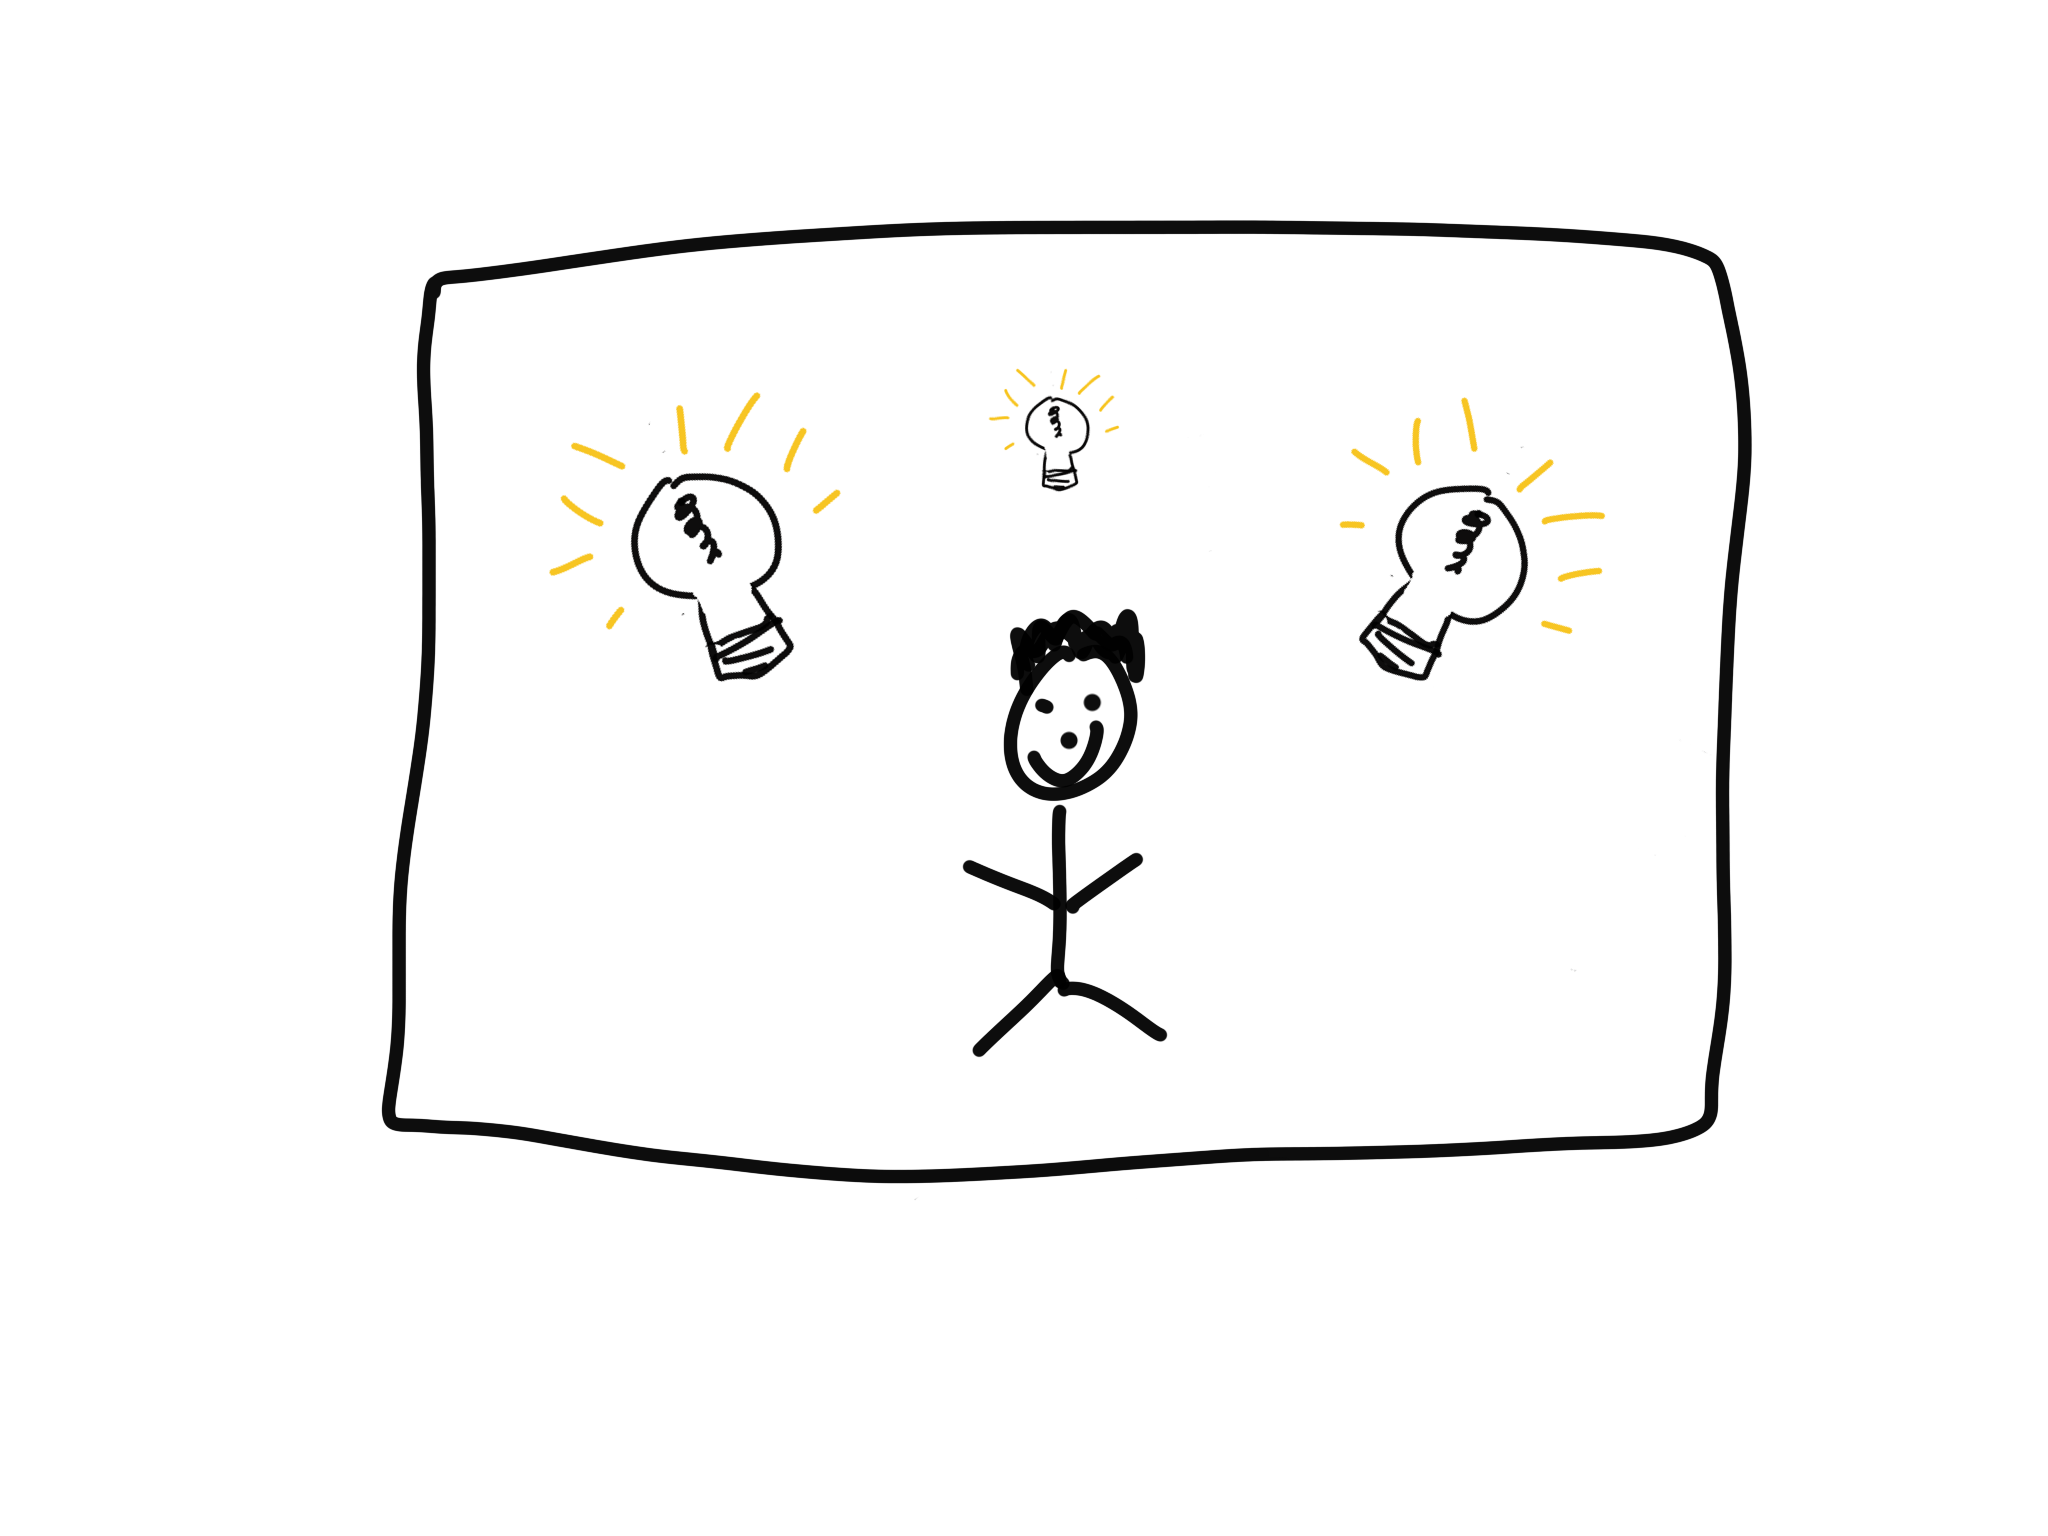 The Online Startup Pro - Generating Great New Ideas